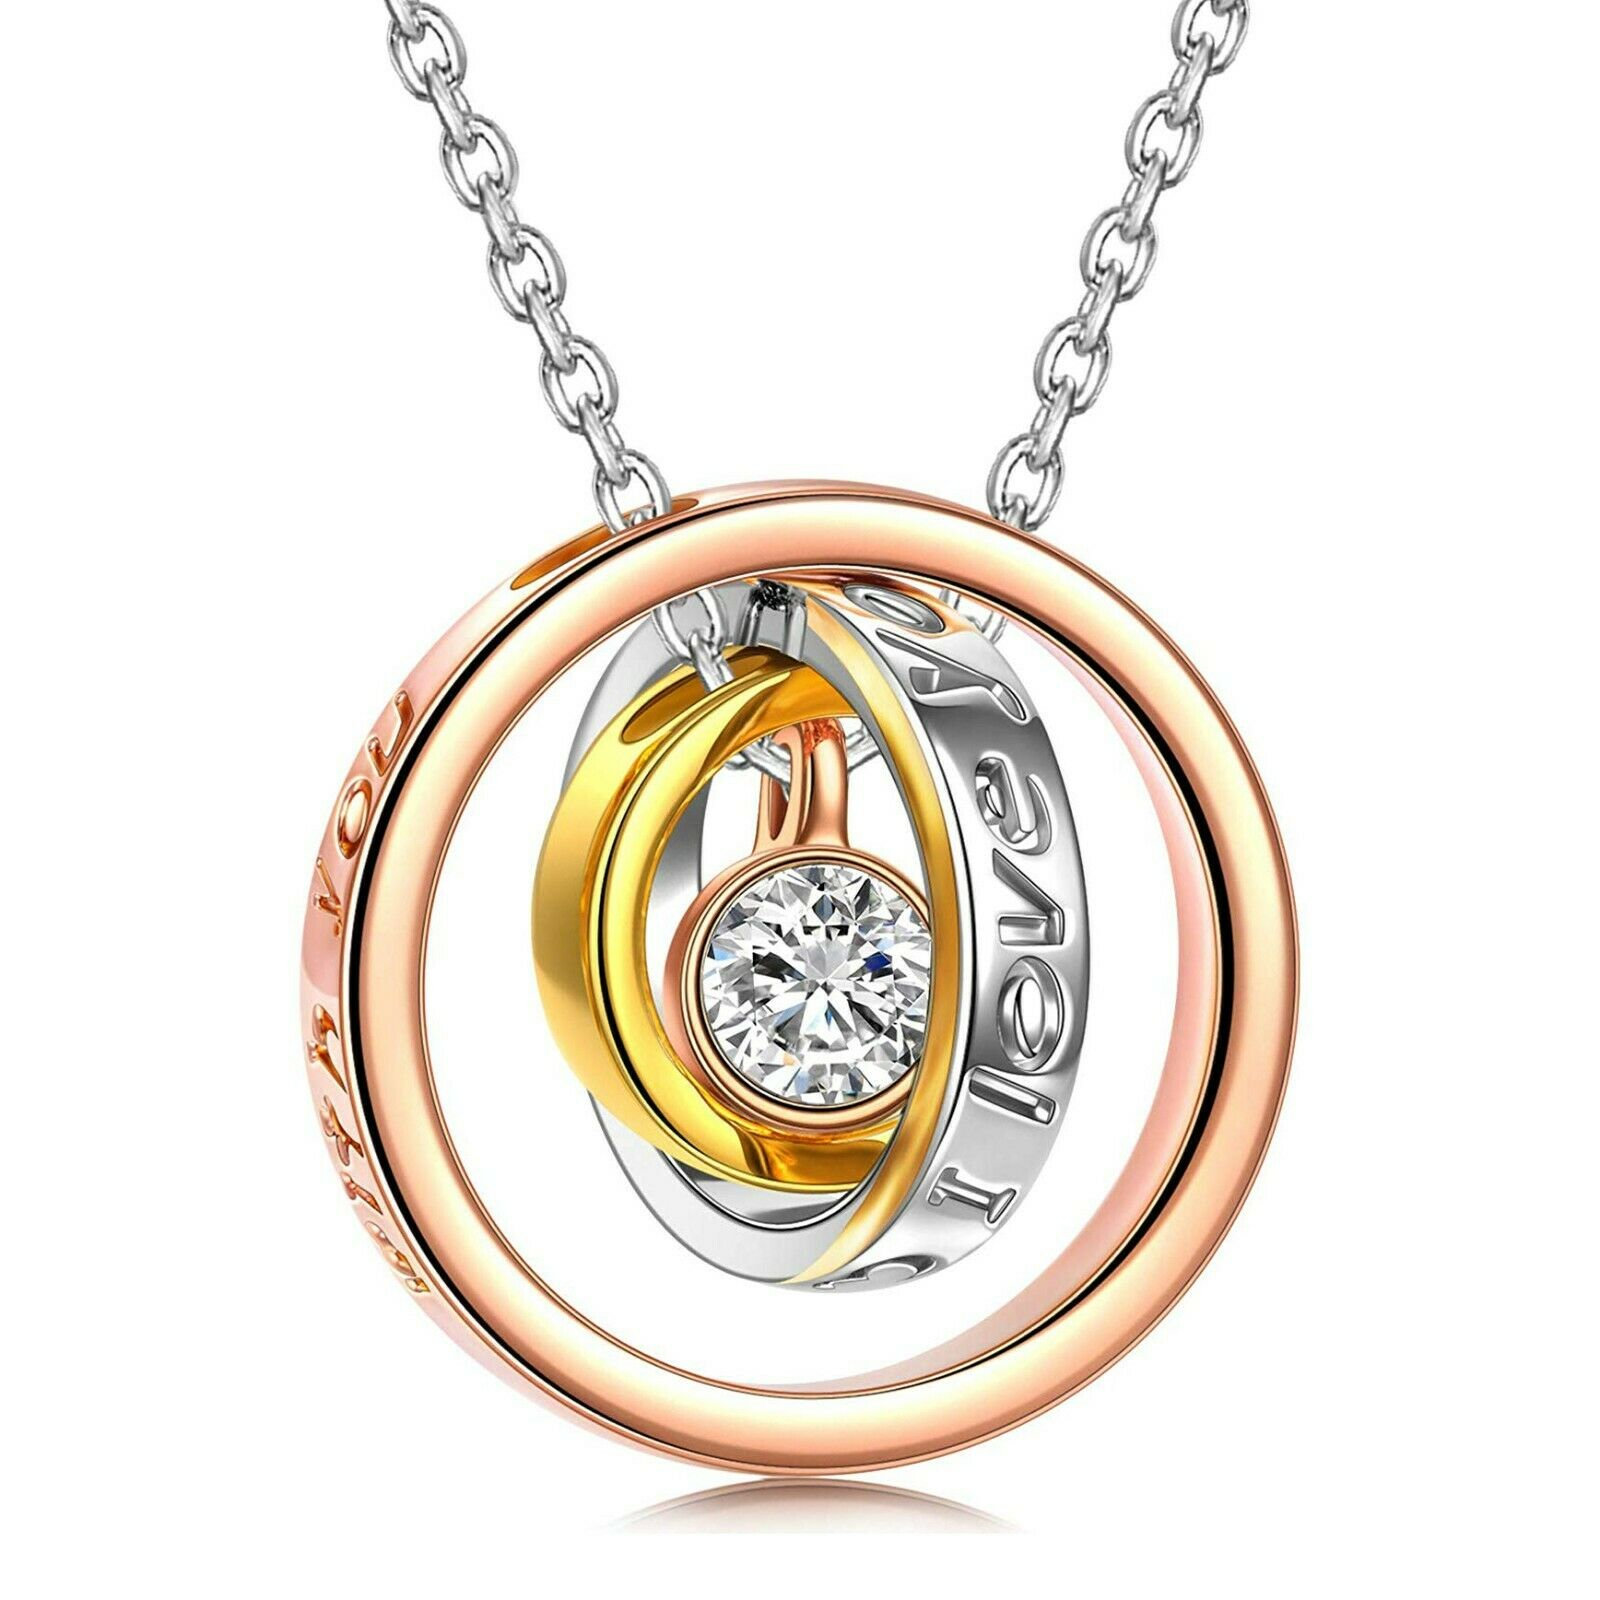 IIUUGG Rose Gold Necklace Women Crystals Pendant Necklace Crystal Heart Necklace Women Jewelry Love Gifts